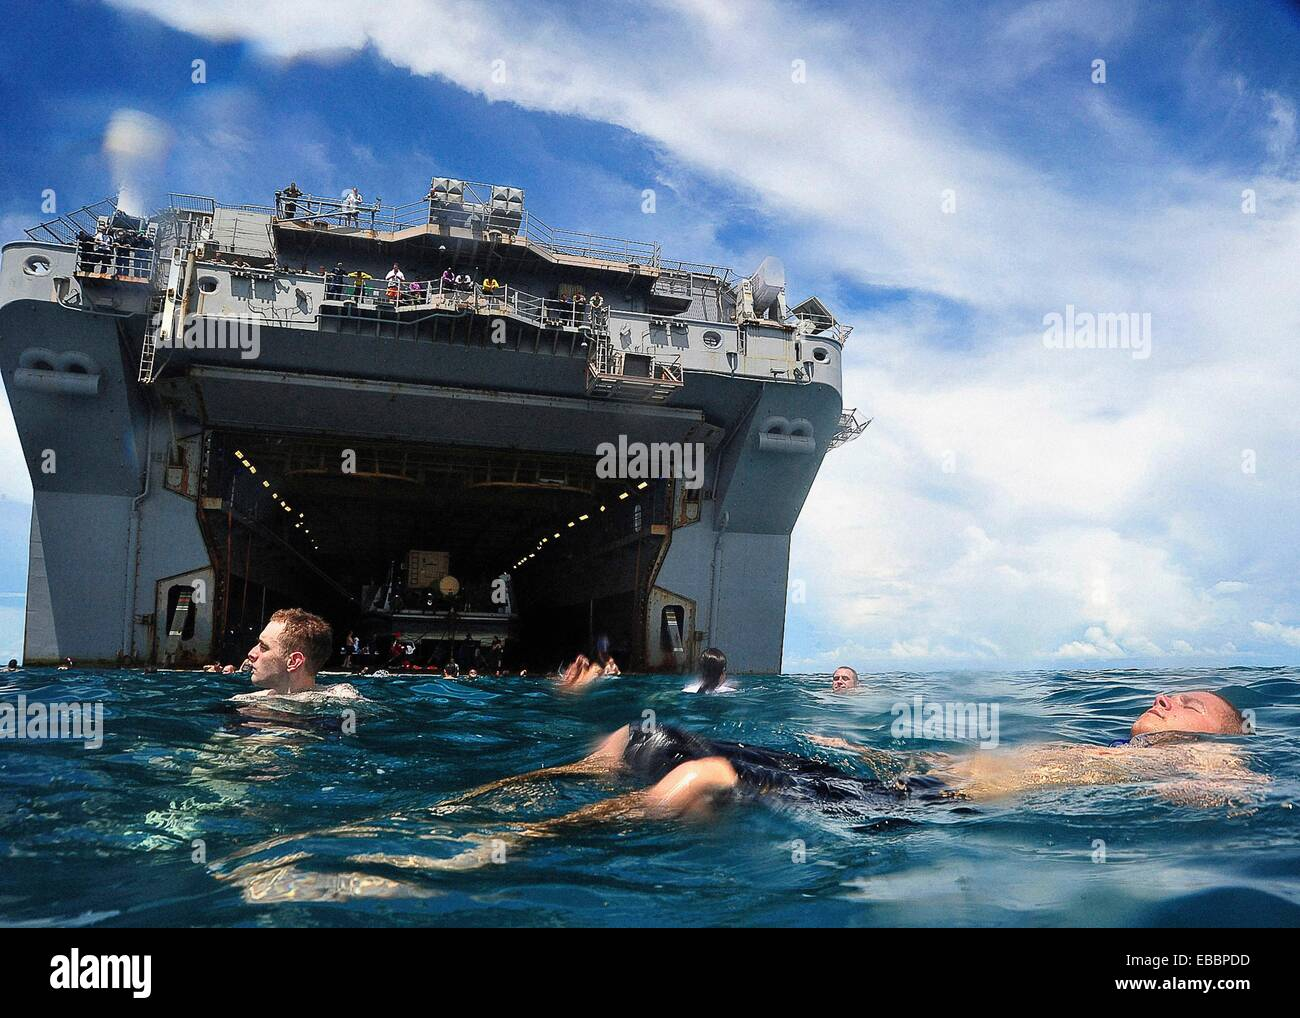 CARIBBEAN SEA Sept  22, 2010 Service members embarked aboard the multipurpose amphibious assault ship USS Iwo Jima - Stock Image